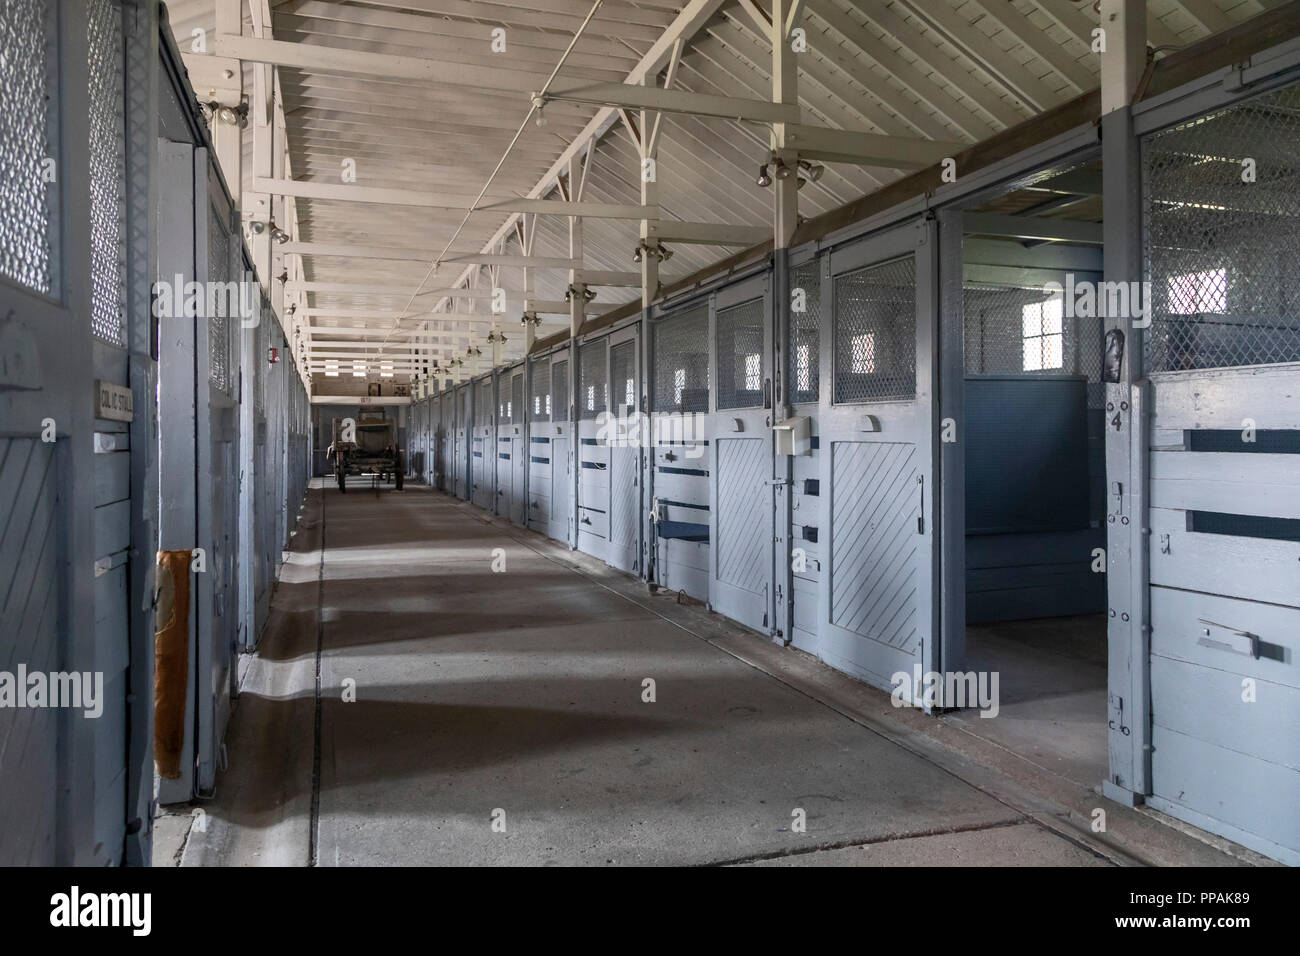 Crawford, Nebraska - The Veterinary Hospital at Fort Robinson State Park. Fort Robinson is a former U.S. Army outpost which played a major role in the - Stock Image